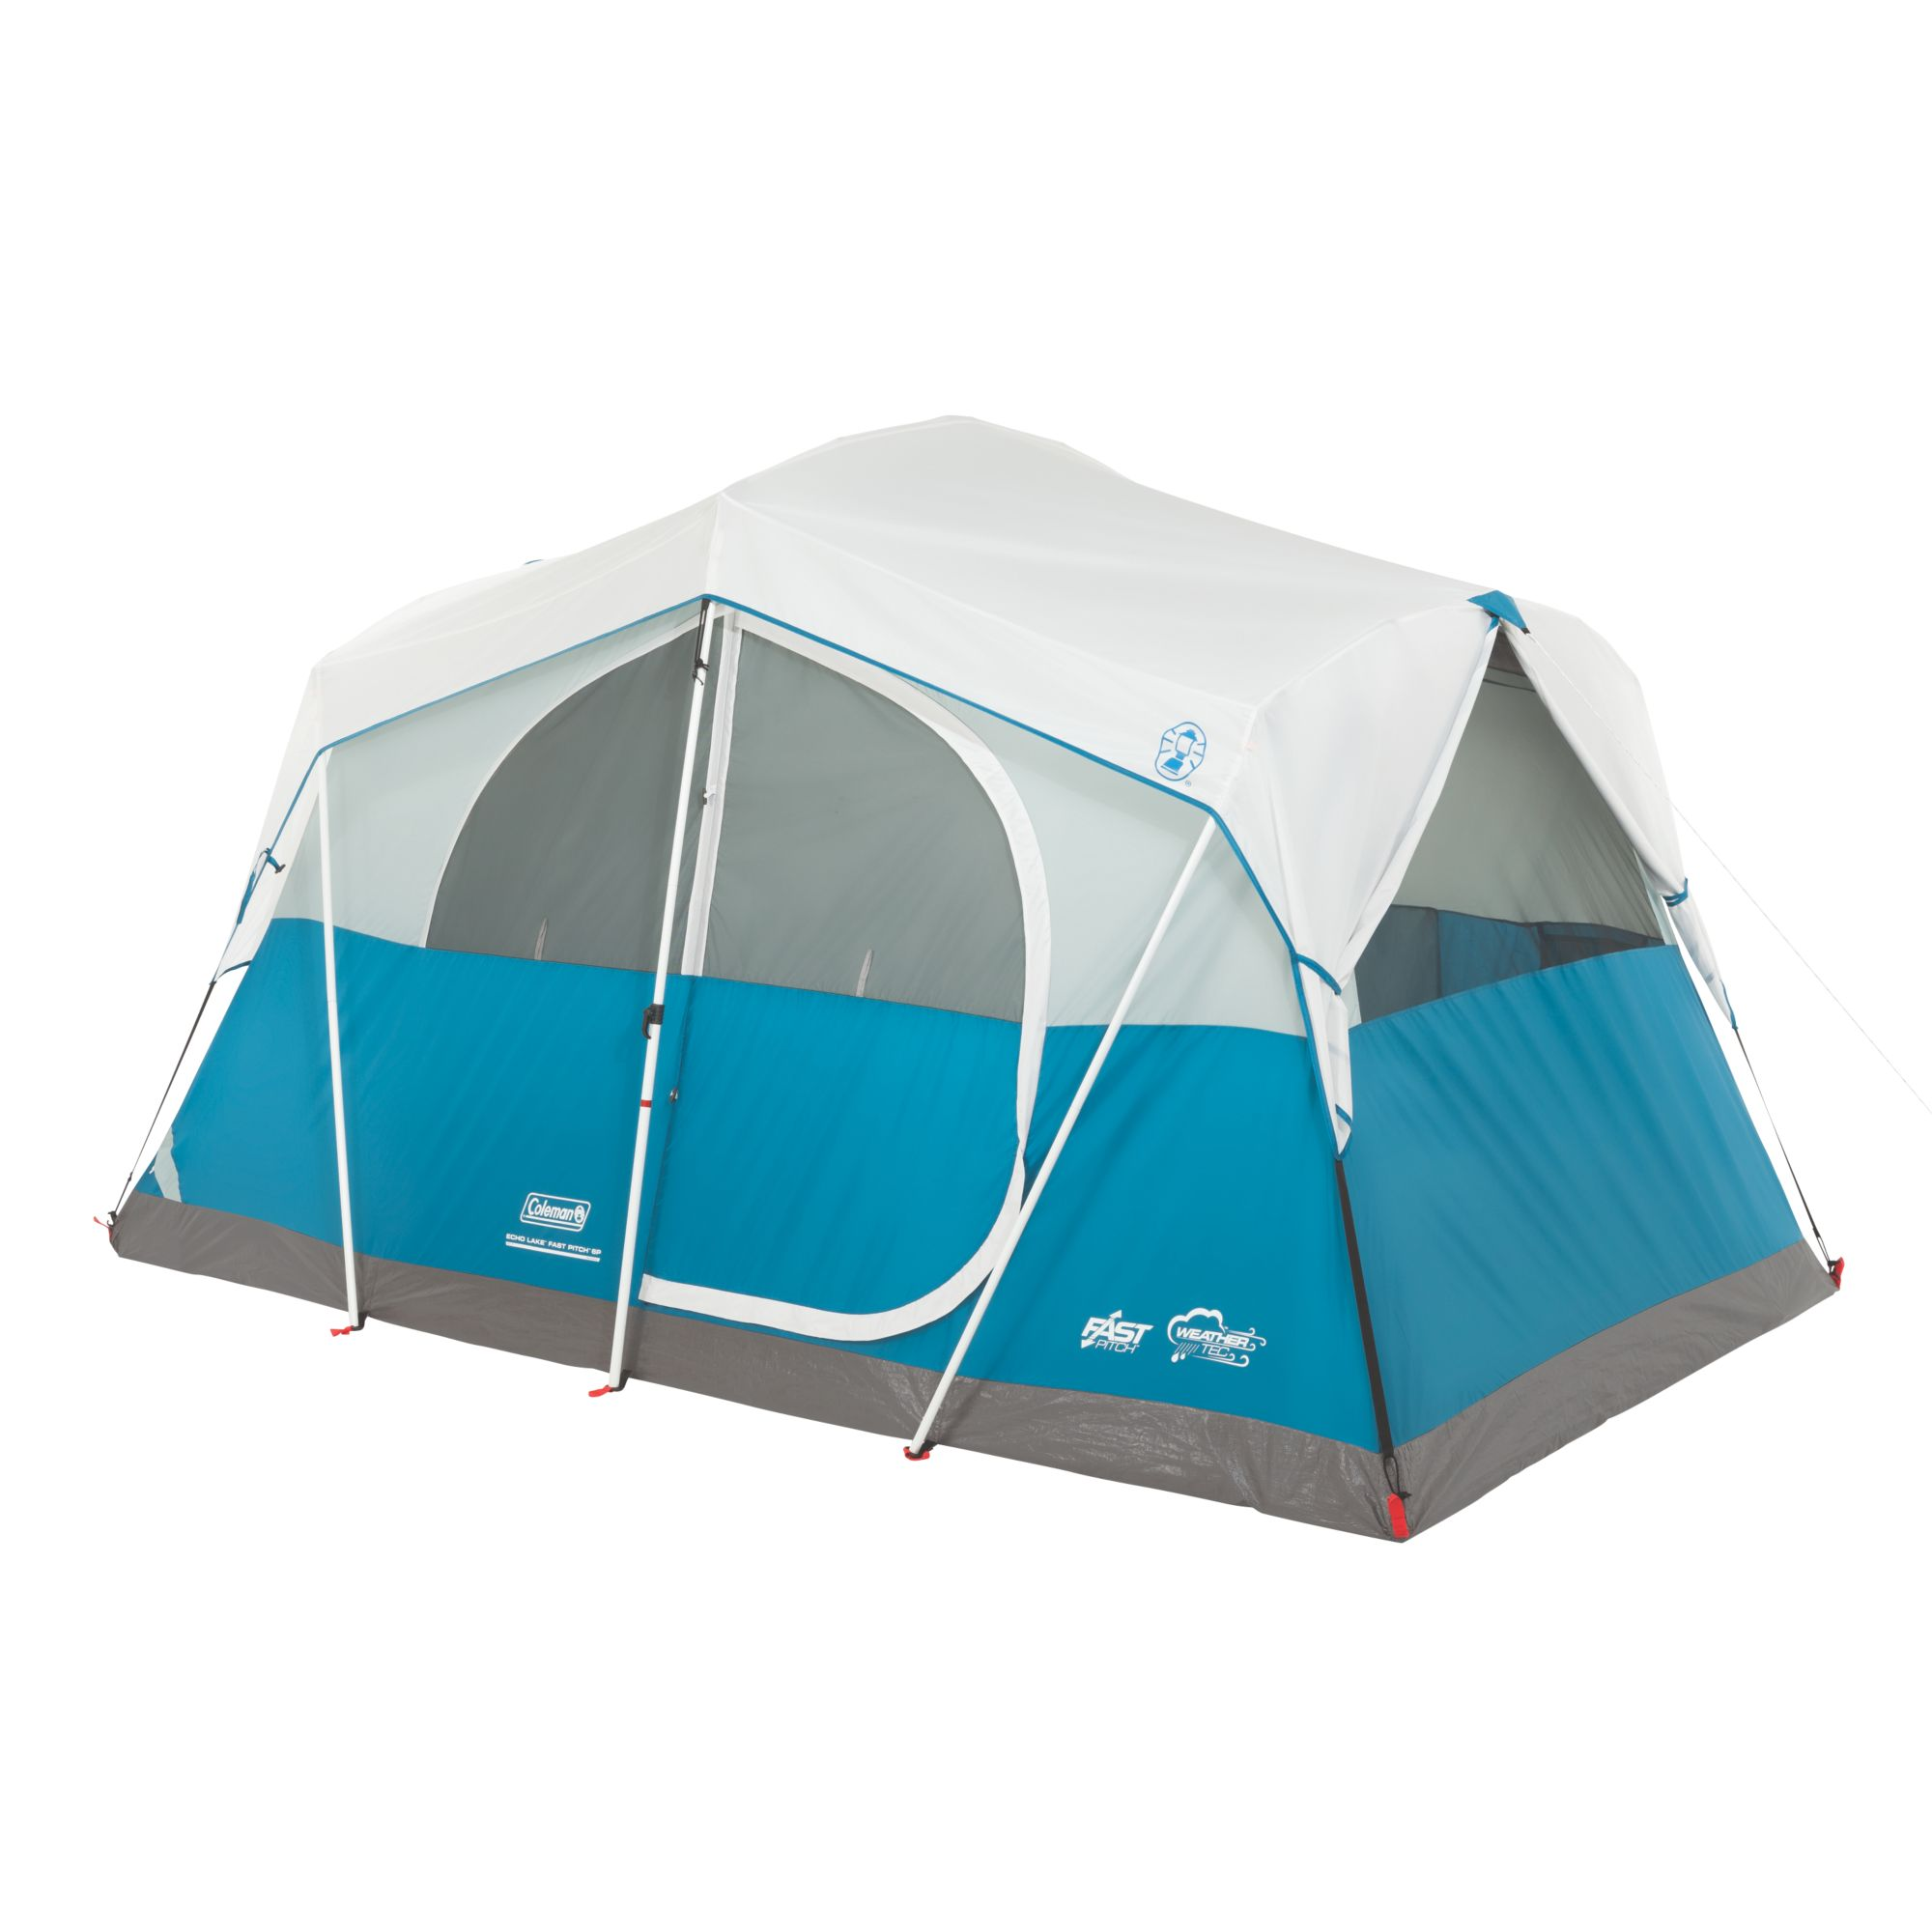 Coleman Echo Lake 6 Person Fast Pitch Cabin Tent w/ 2u0027 x 2u0027  sc 1 st  Walmart & Coleman Echo Lake 6 Person Fast Pitch Cabin Tent w/ 2u0027 x 2 ...